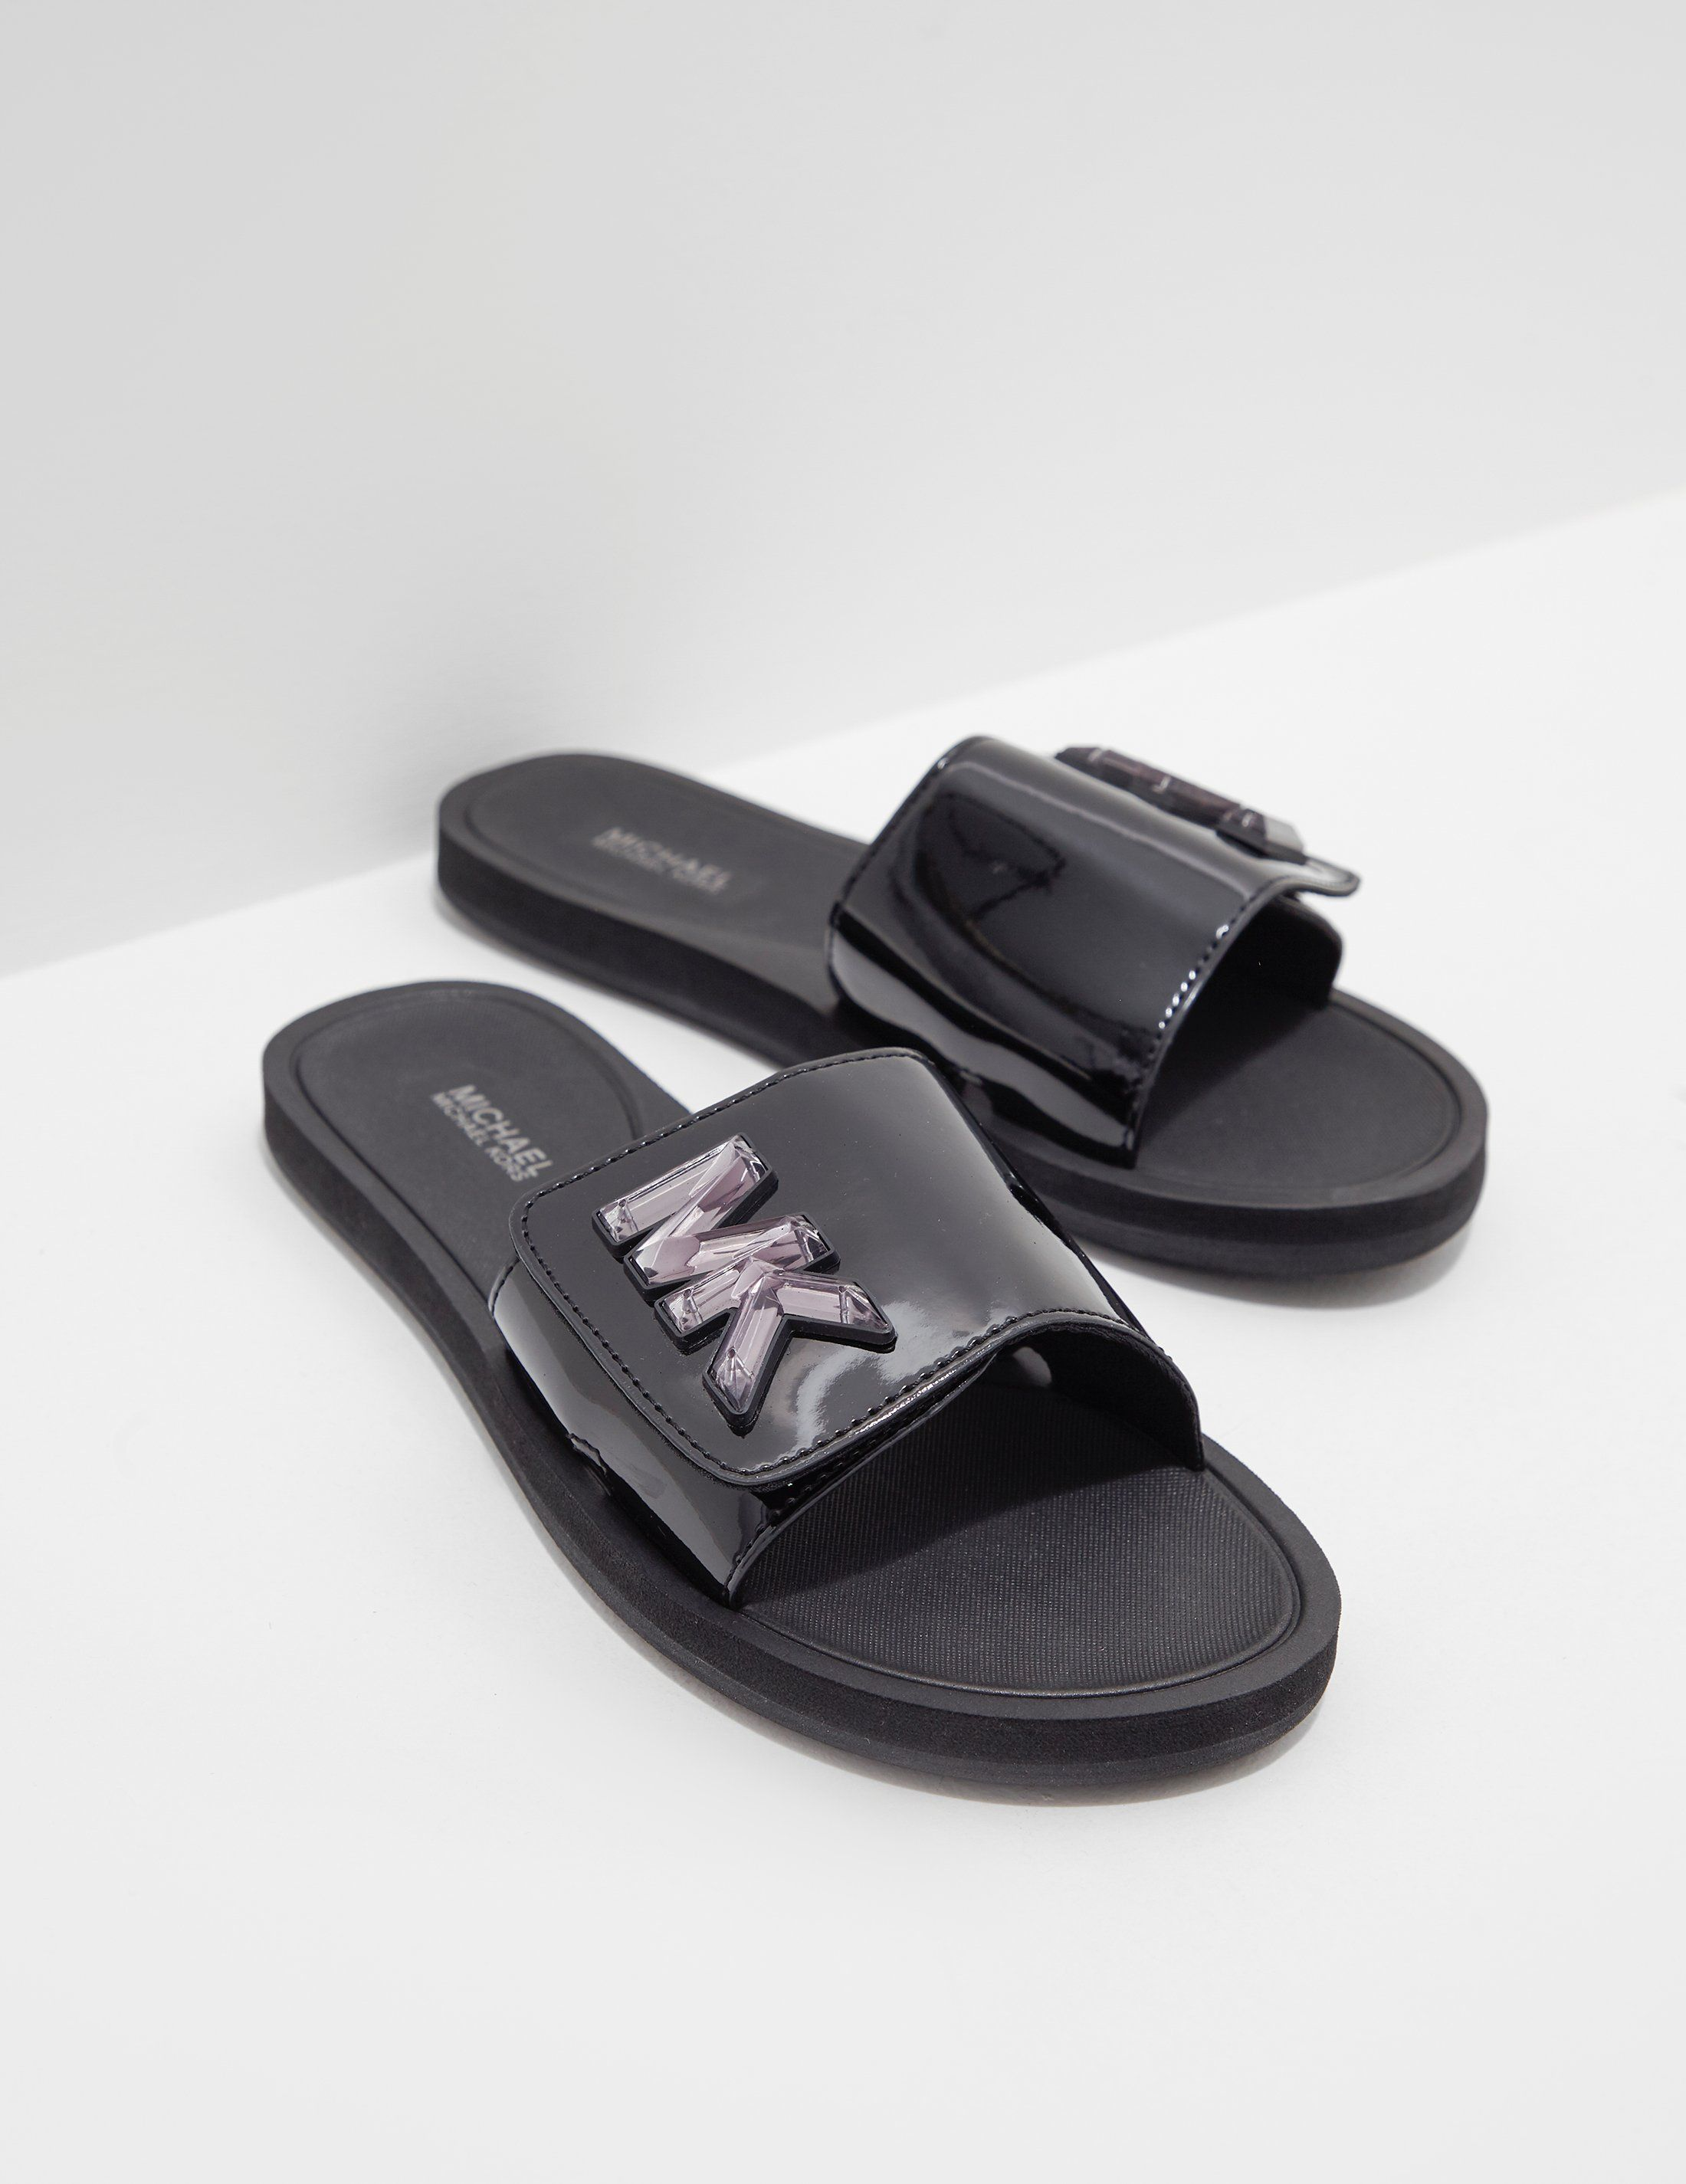 Michael Kors Slides